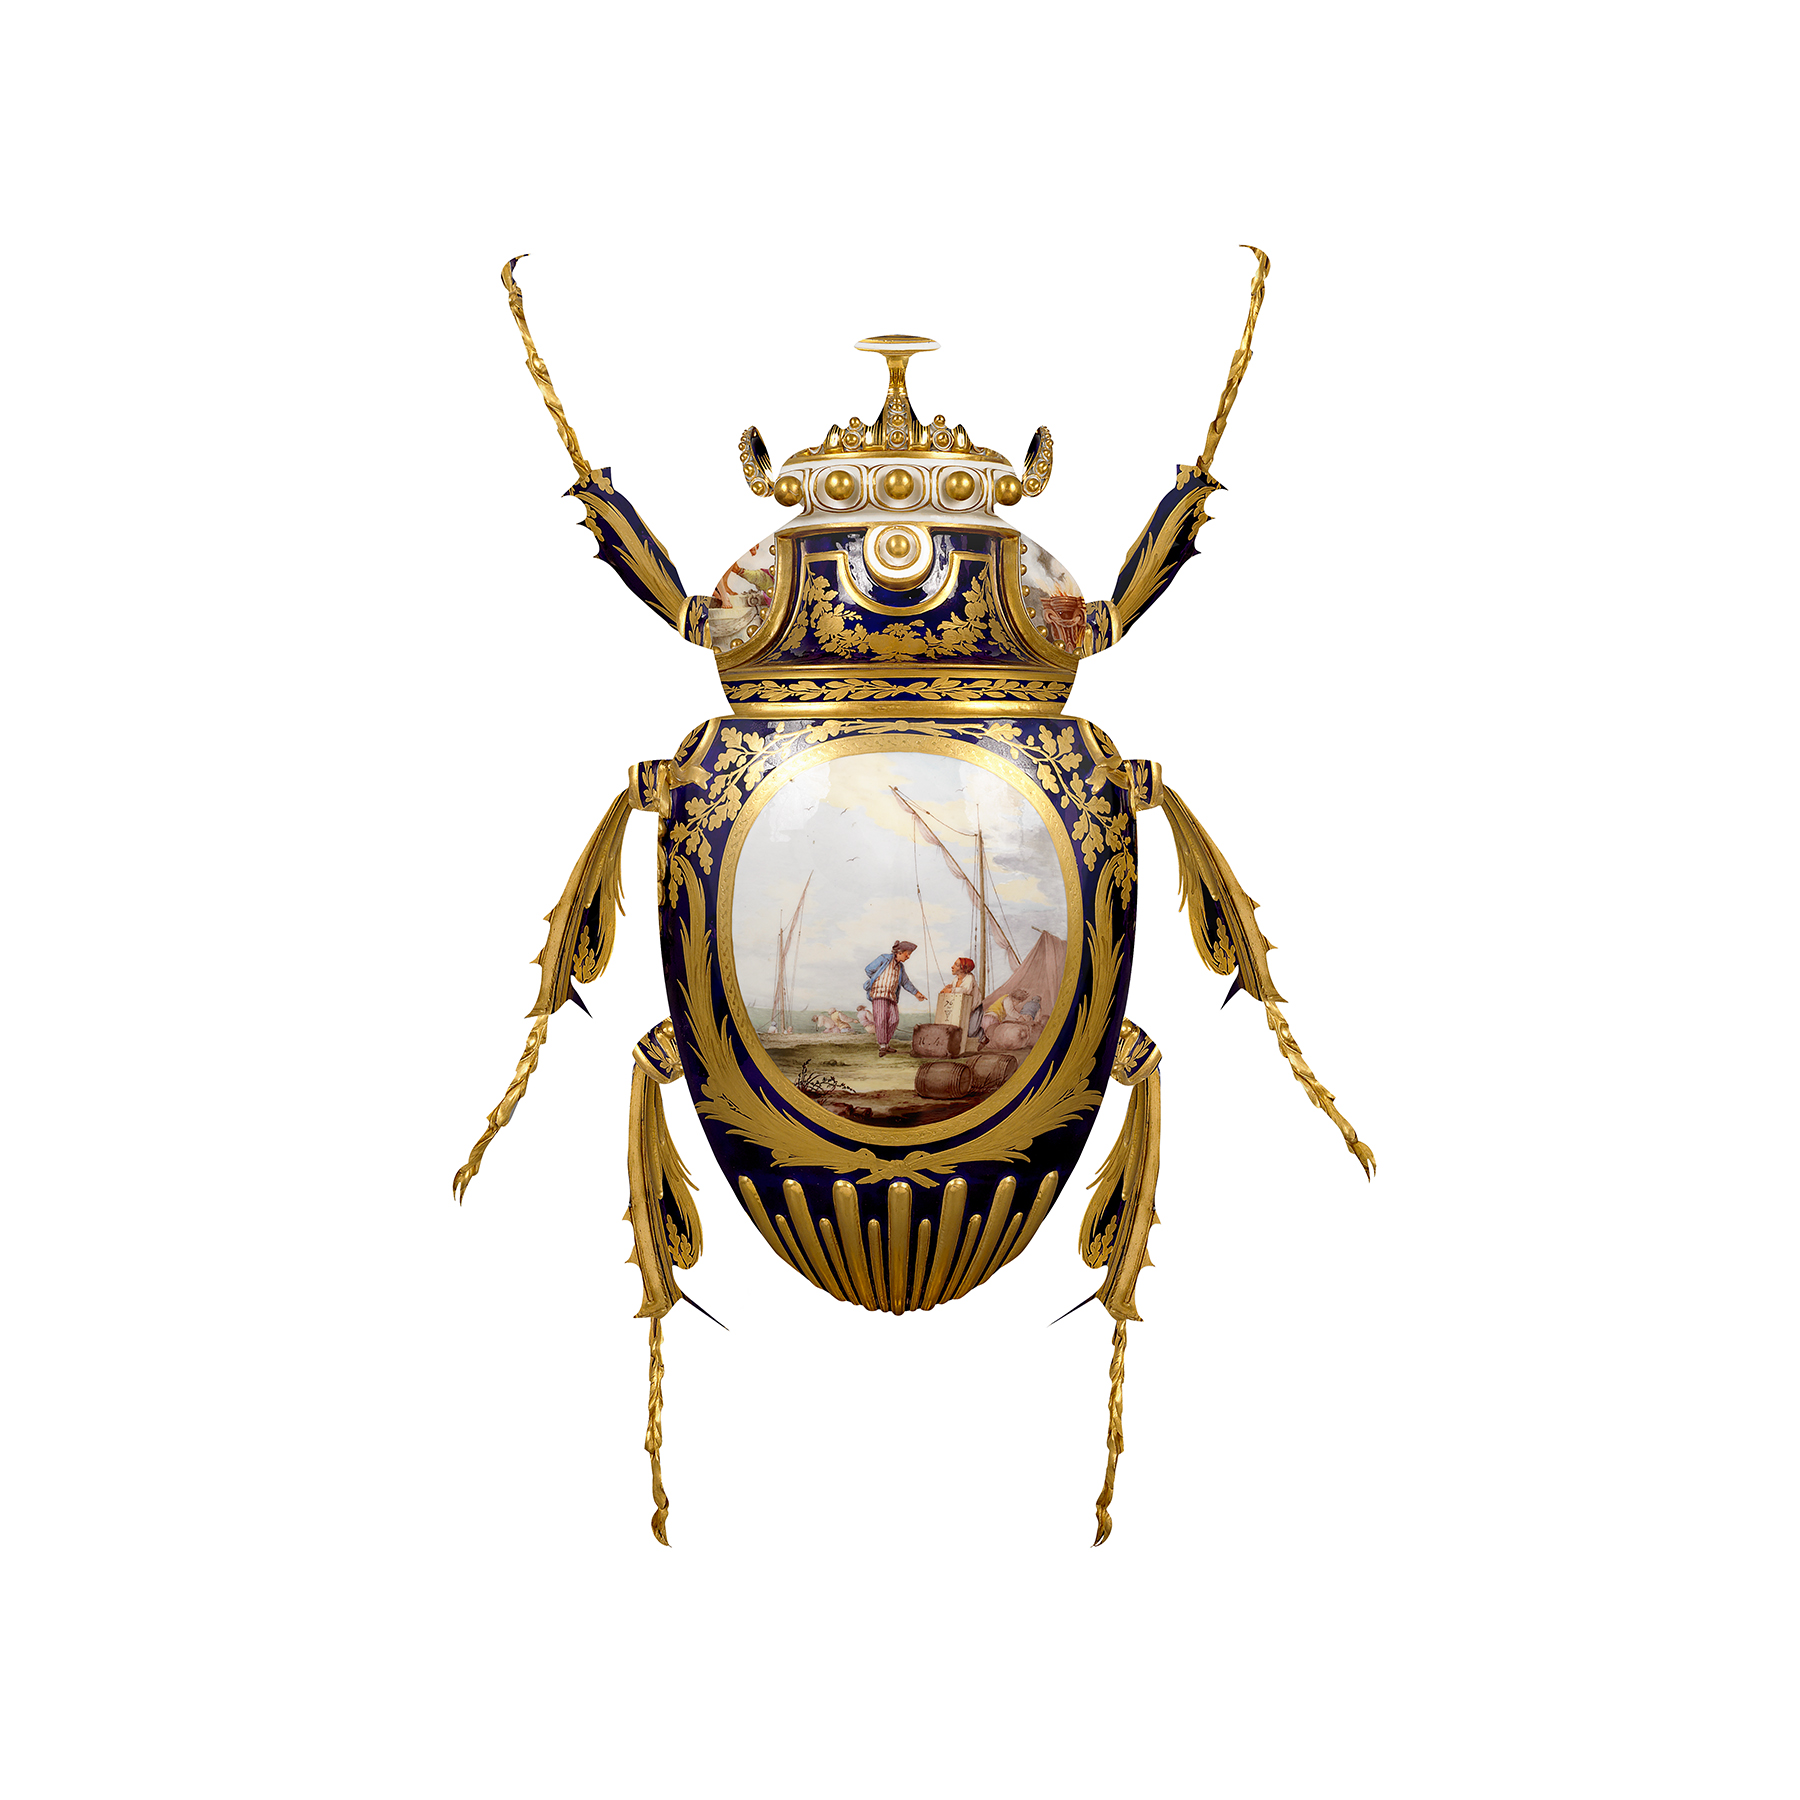 Visual Artwork: SÈVRES GOLIATHUS SCARABAEIDAE by artist and creator Magnus Gjoen